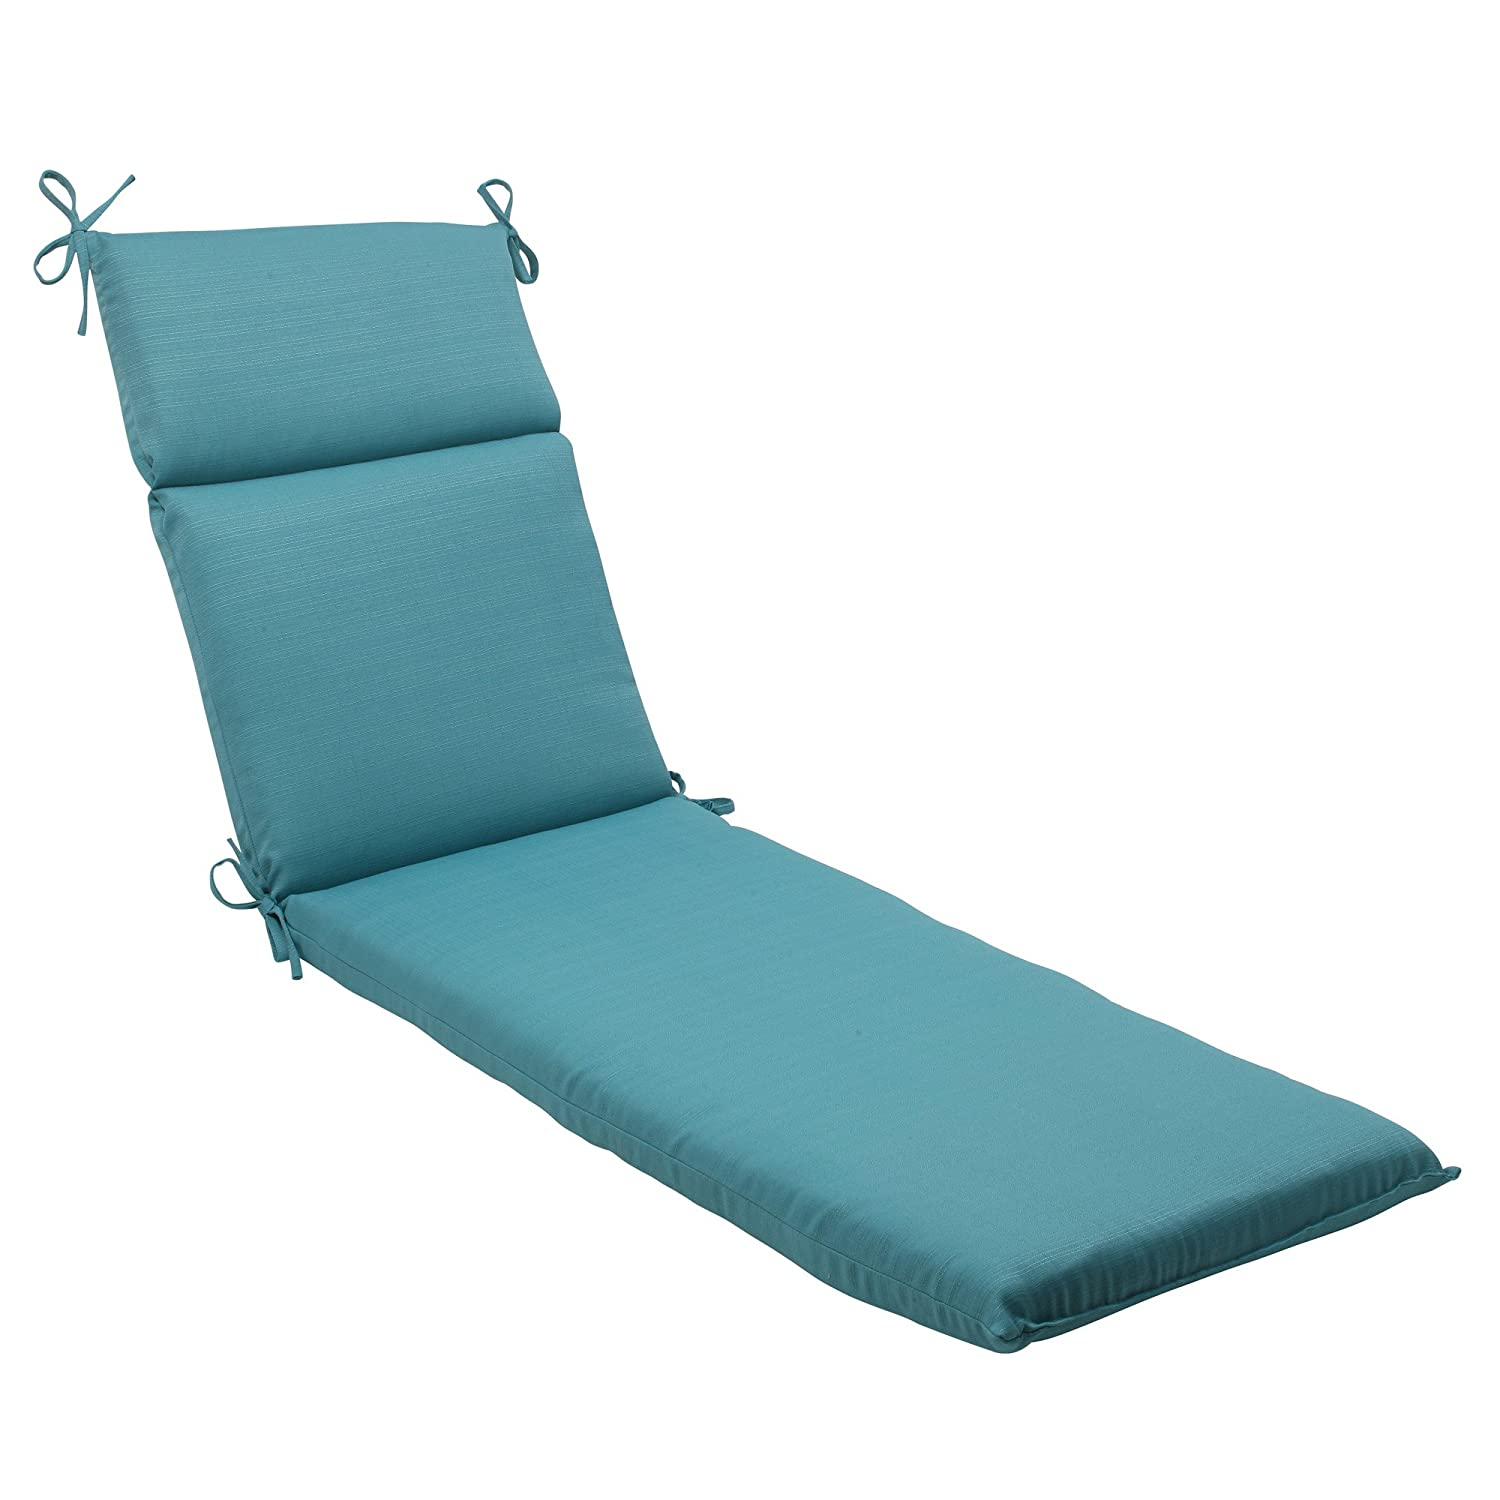 Pillow Perfect Indoor/Outdoor Forsyth Chaise Lounge Cushion, Turquoise